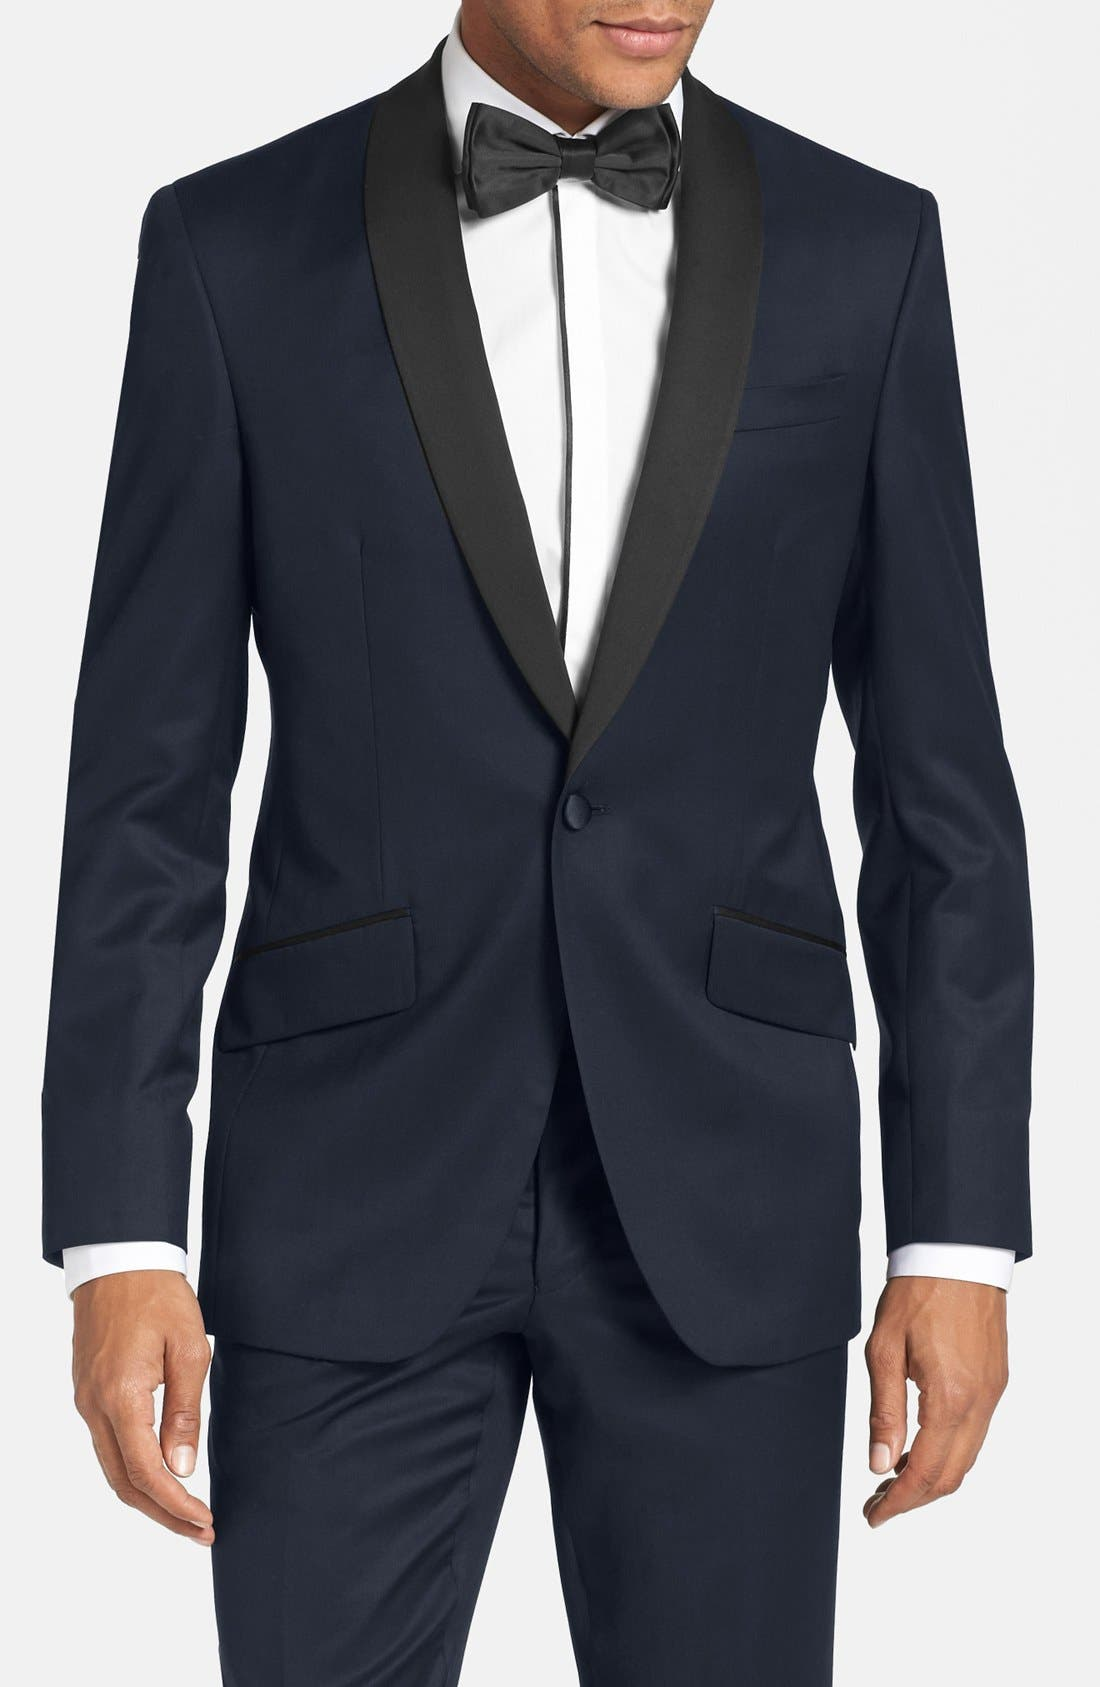 TED BAKER LONDON, Josh Trim Fit Navy Shawl Lapel Tuxedo, Alternate thumbnail 2, color, NAVY BLUE